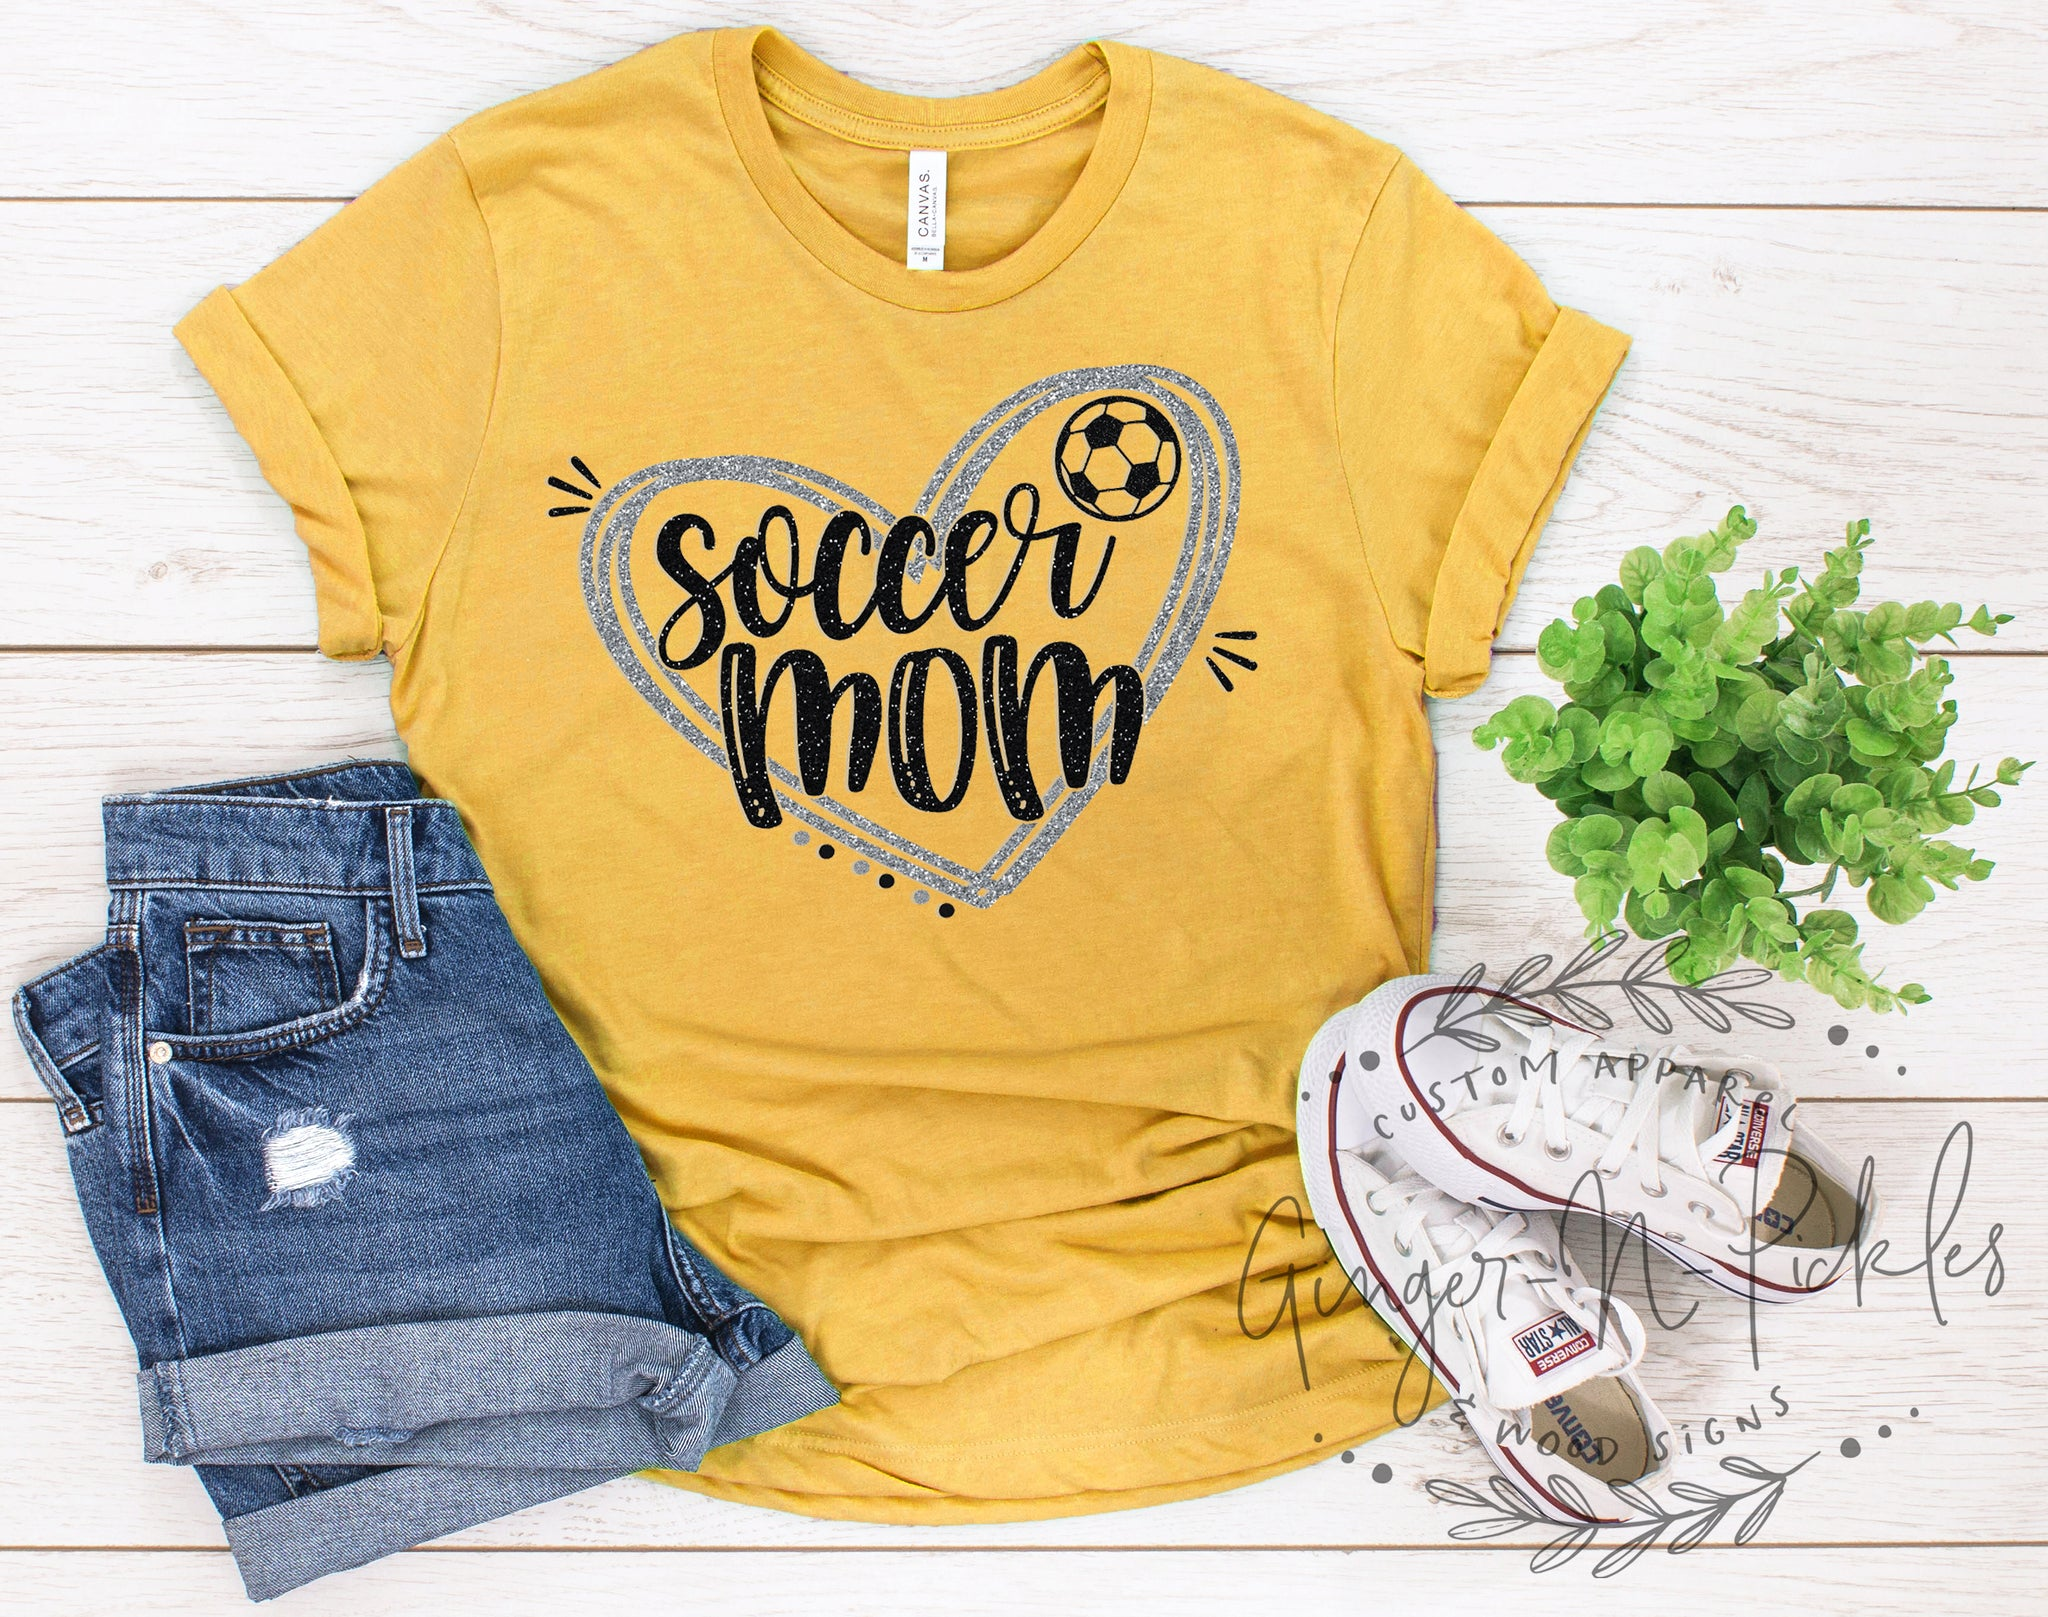 Soccer Mom Shirt, Soccer Mom with Heart T-Shirt, Vintage Style Graphic Tee Shirt